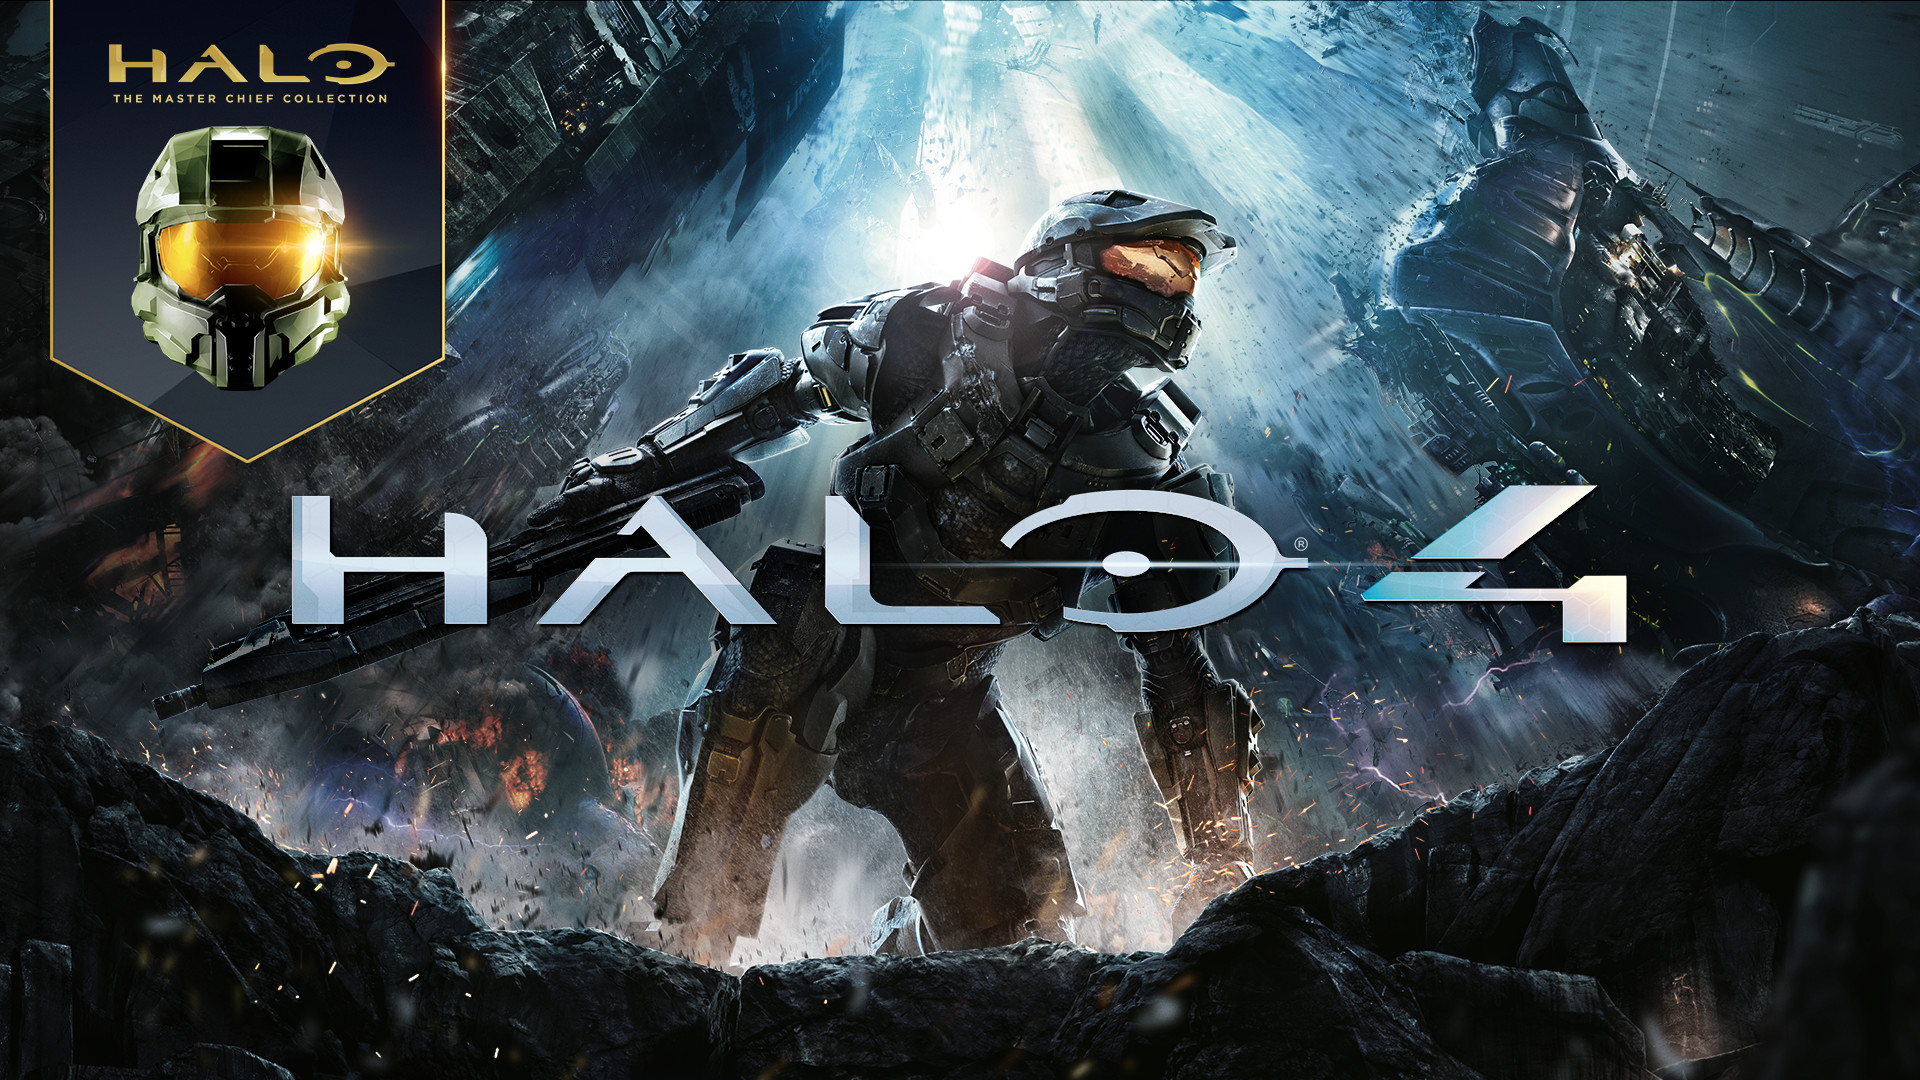 Halo 4 PC The Master Chief Collection